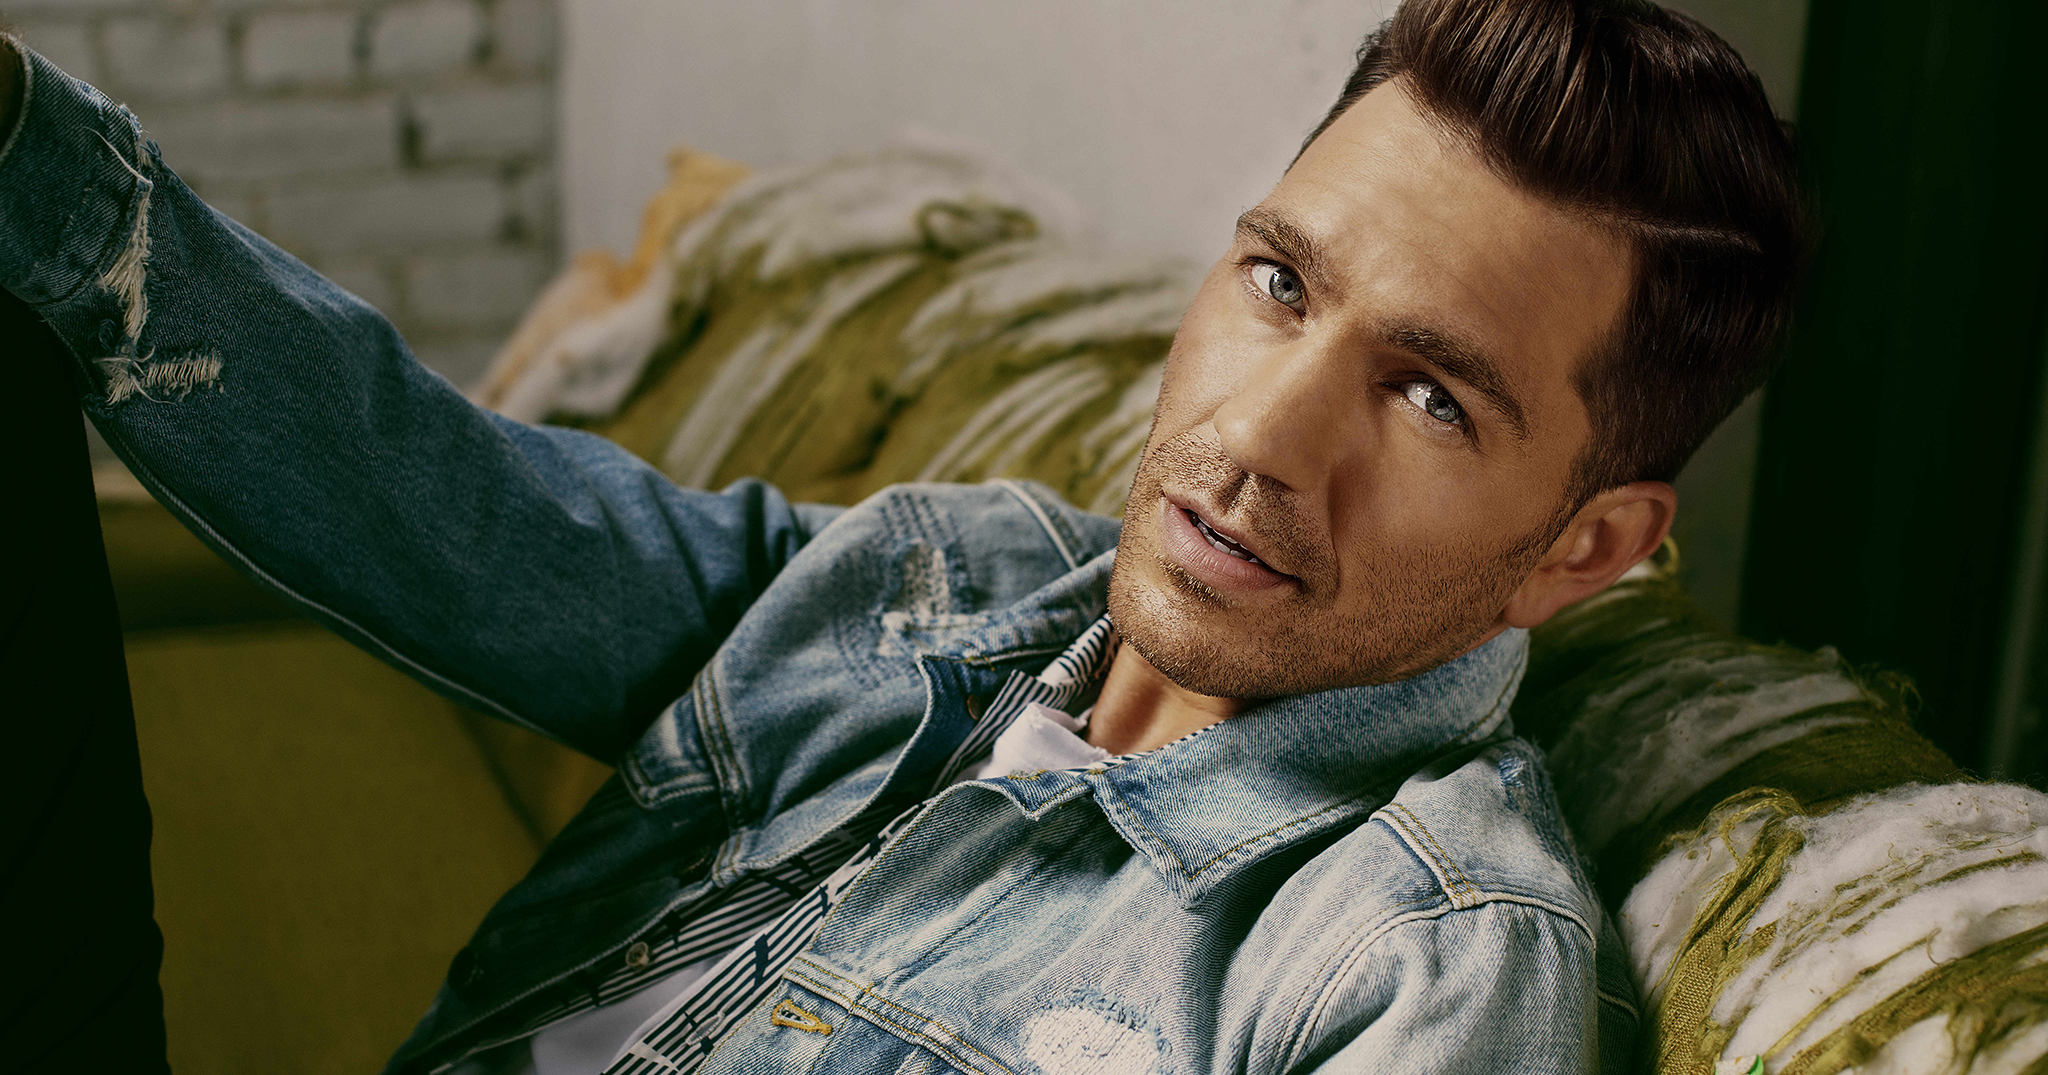 Andy Grammer Promo Image